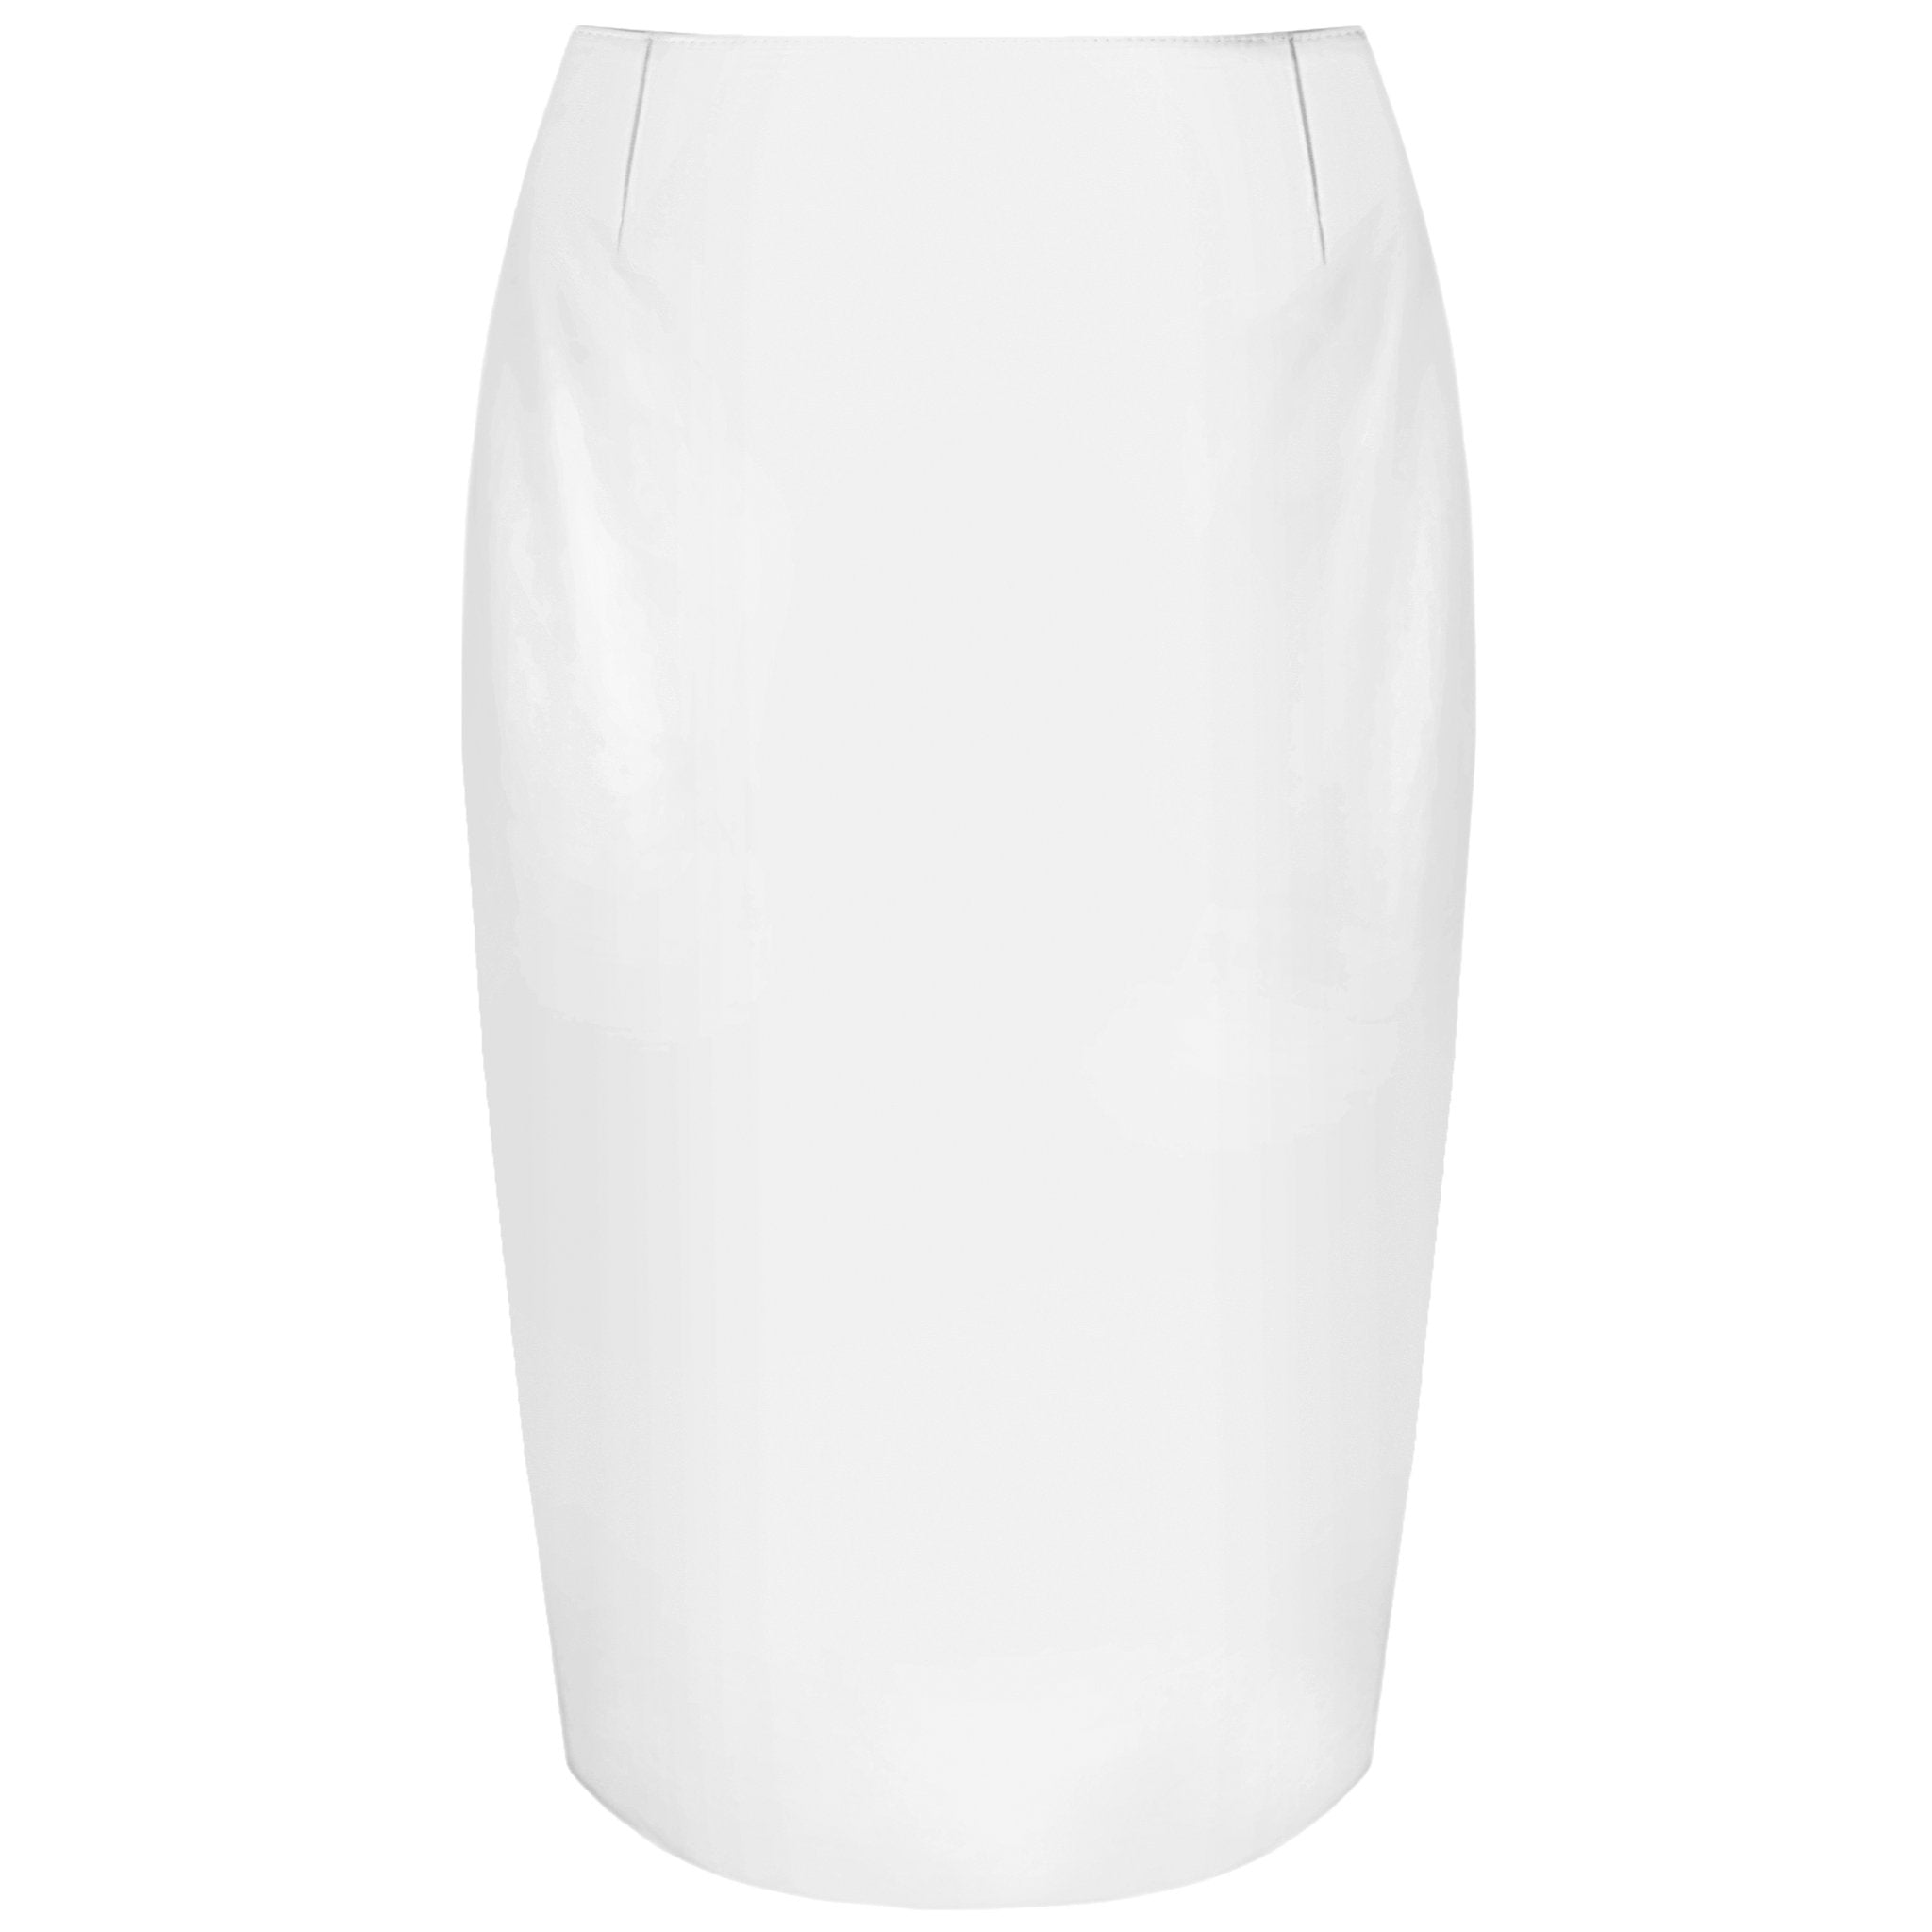 Lambskin Skirt (available in more colors) - Blumera